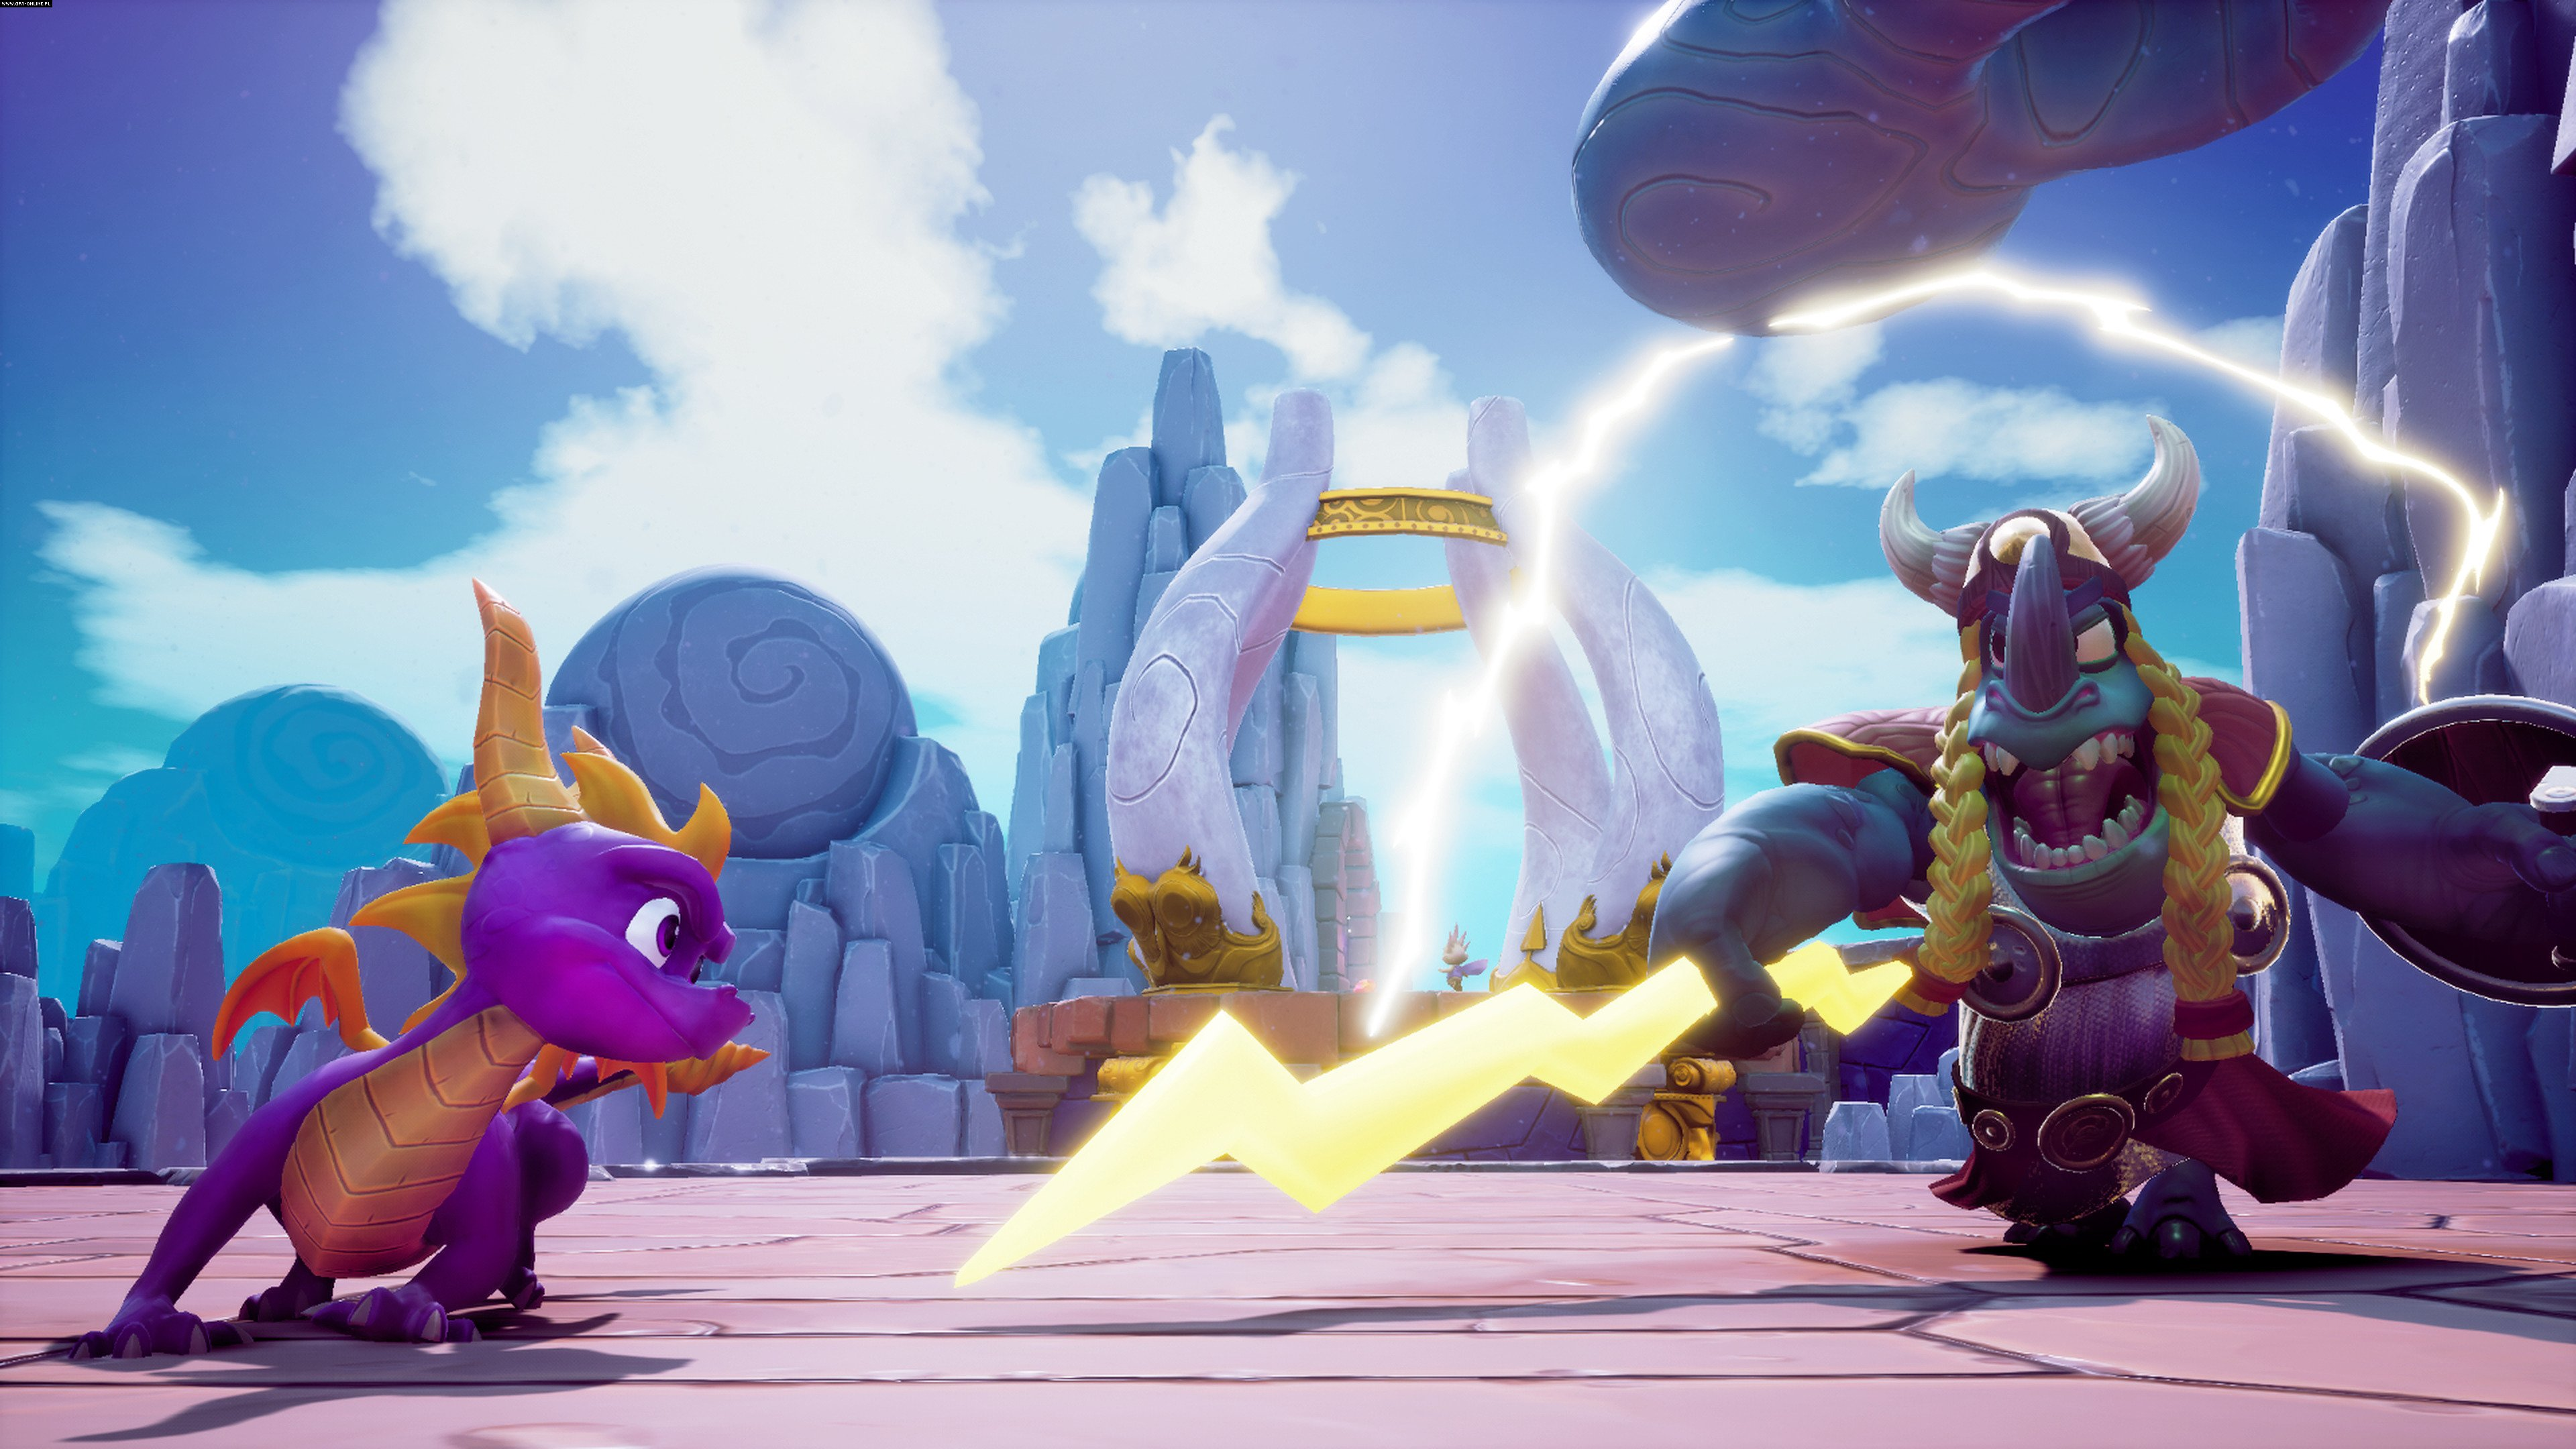 Spyro Reignited Trilogy PS4, XONE Games Image 11/61, Toys for Bob, Activision Blizzard